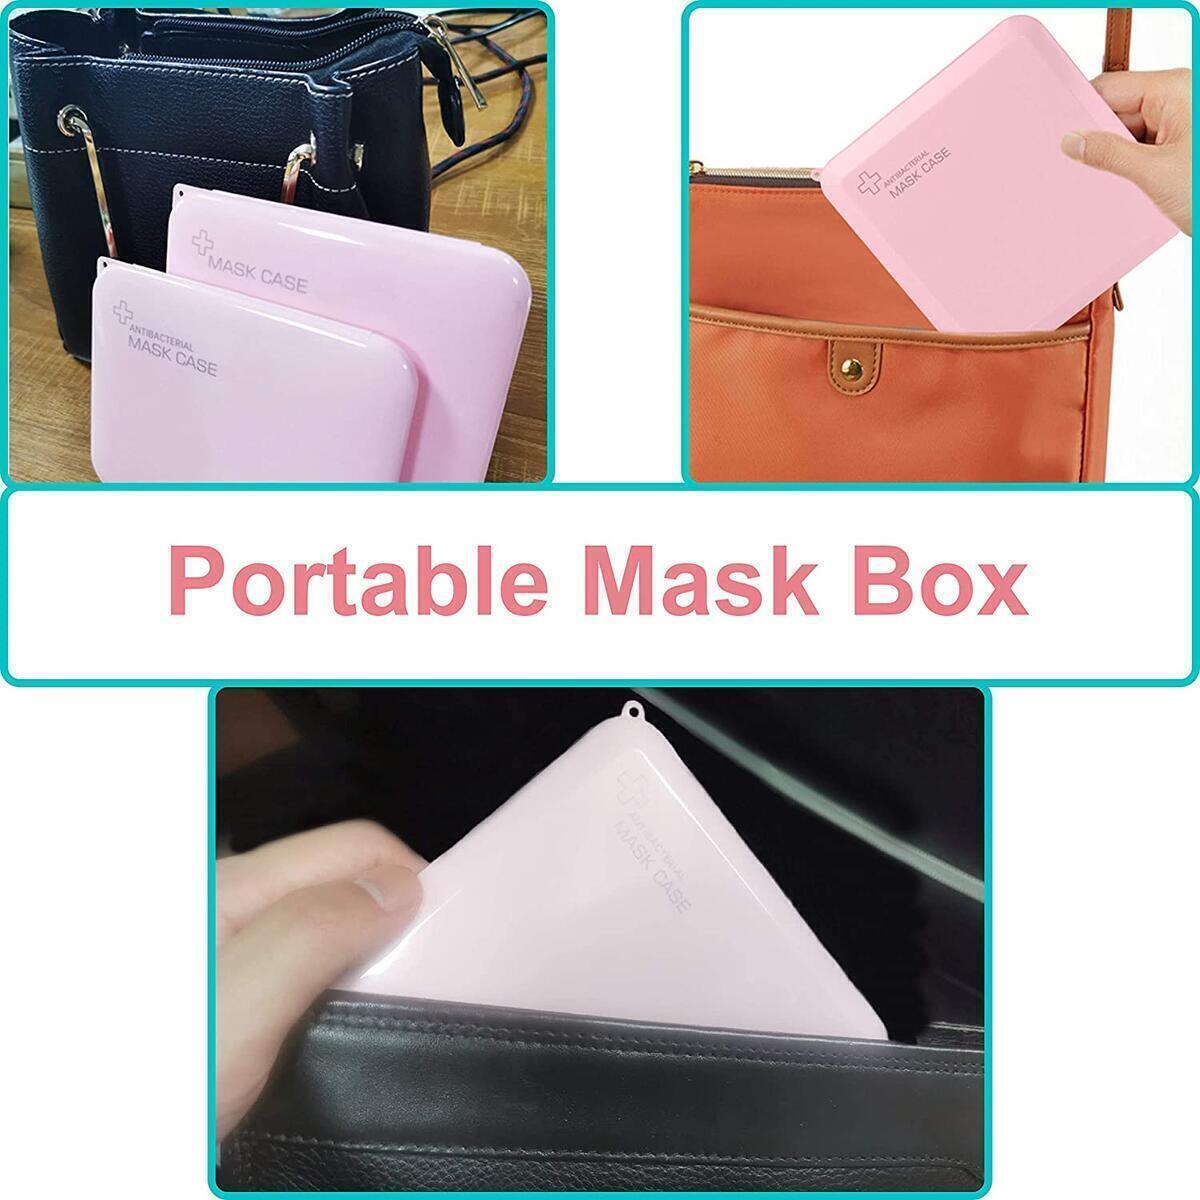 8 Pieces Mask Holder - Plastic Storage Box - Mask Carrying Case - Storage Boxes with Lids - Dustproof Waterproof Storage Box - 4 Colors